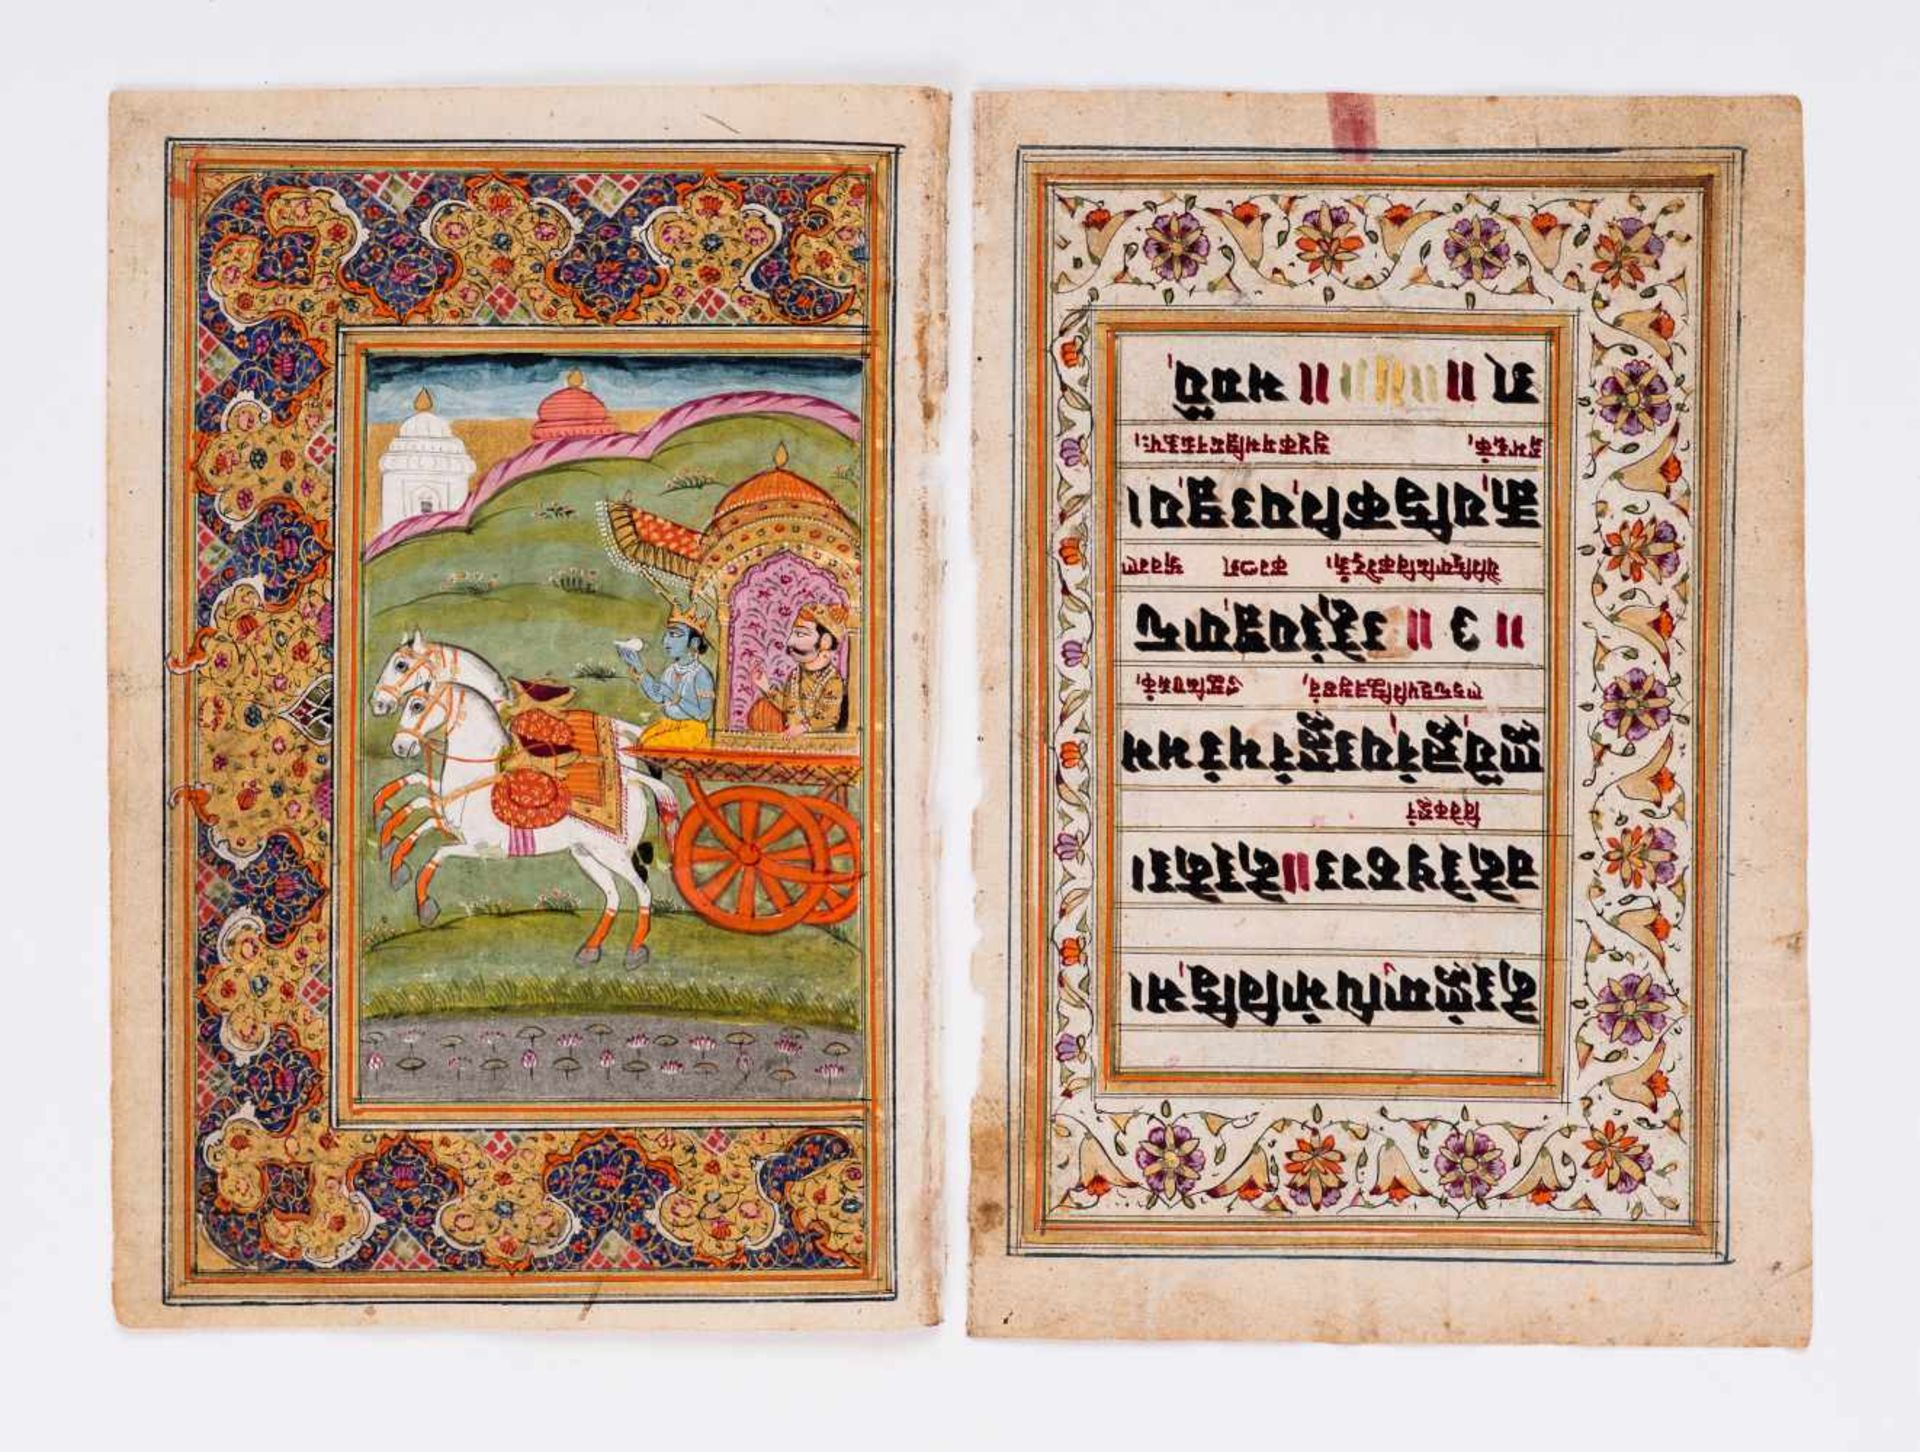 SIX MINIATURE PAINTINGS DEPICTING DEITIES - INDIA, 19th CENTURYMiniature painting with colors and - Image 6 of 7